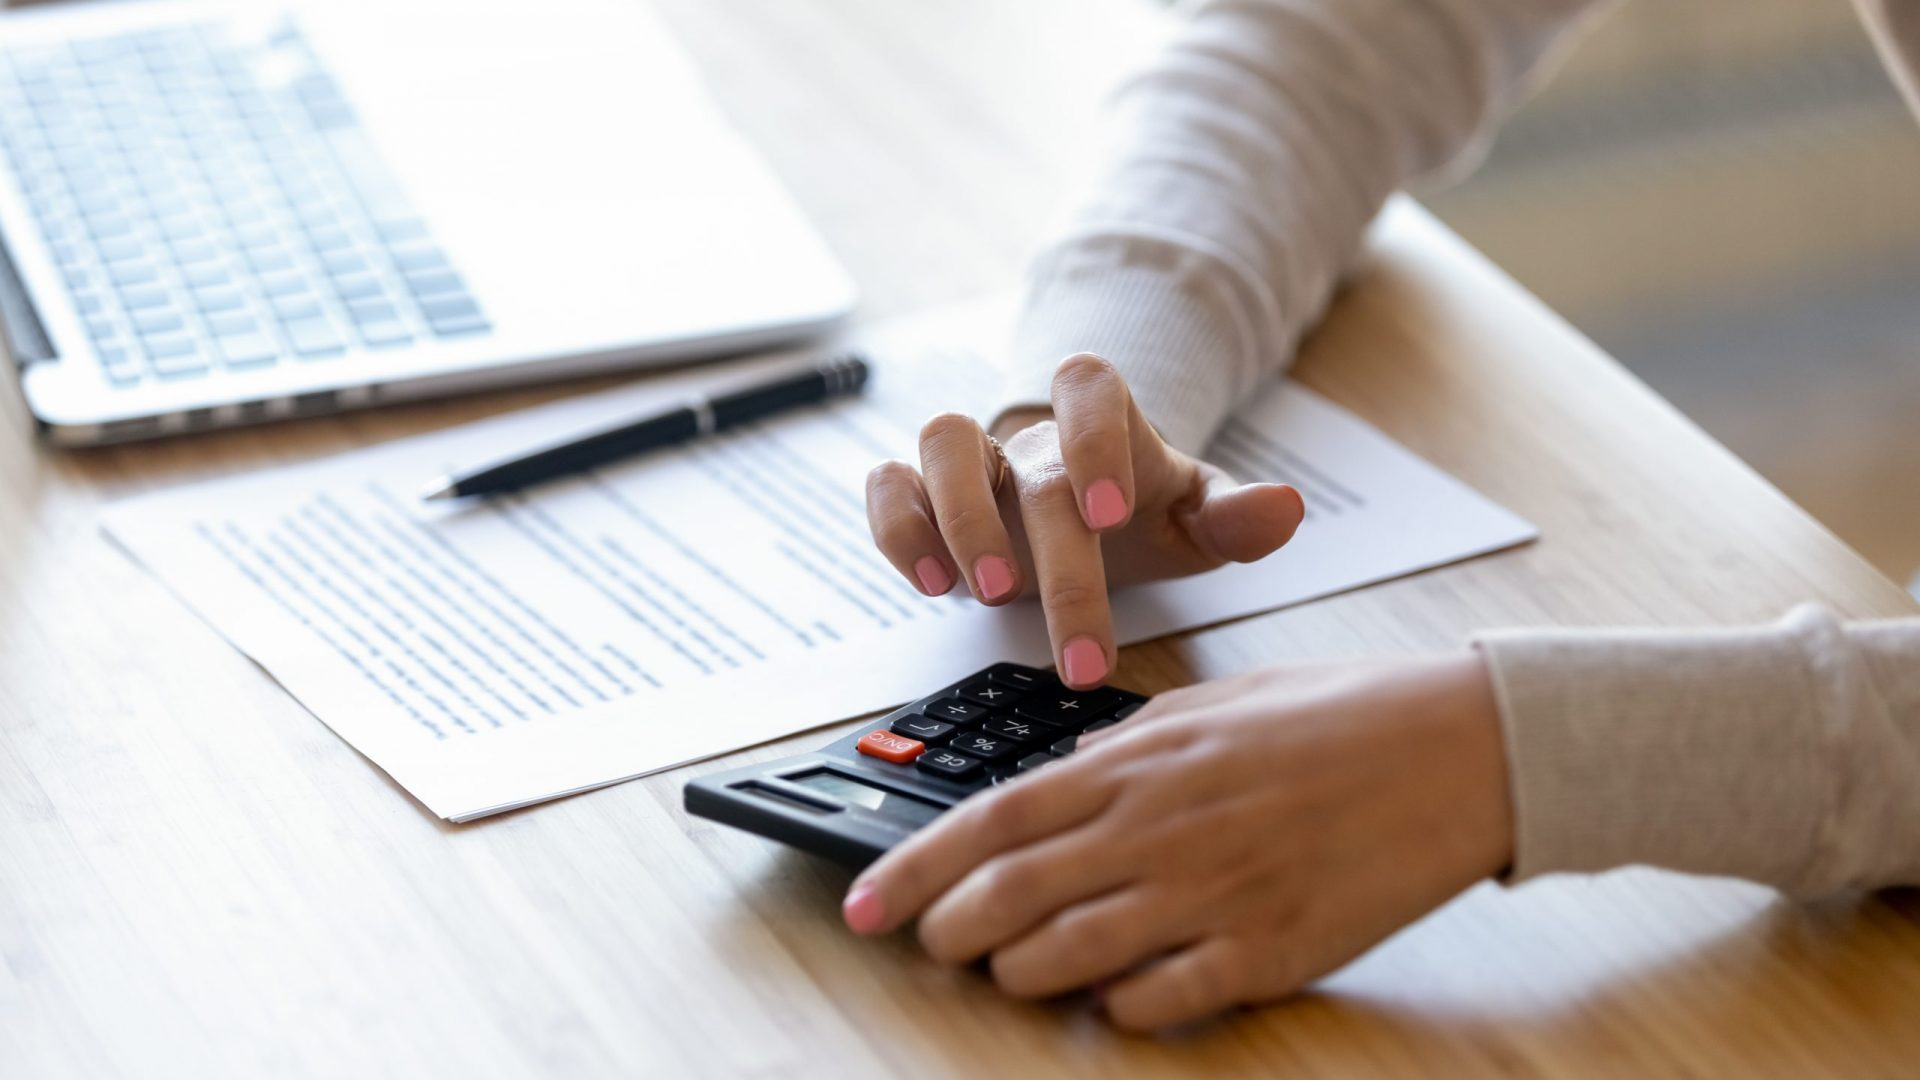 Young,Woman,Using,Calculator,,Calculating,Finance,At,Workplace,,Female,Hands